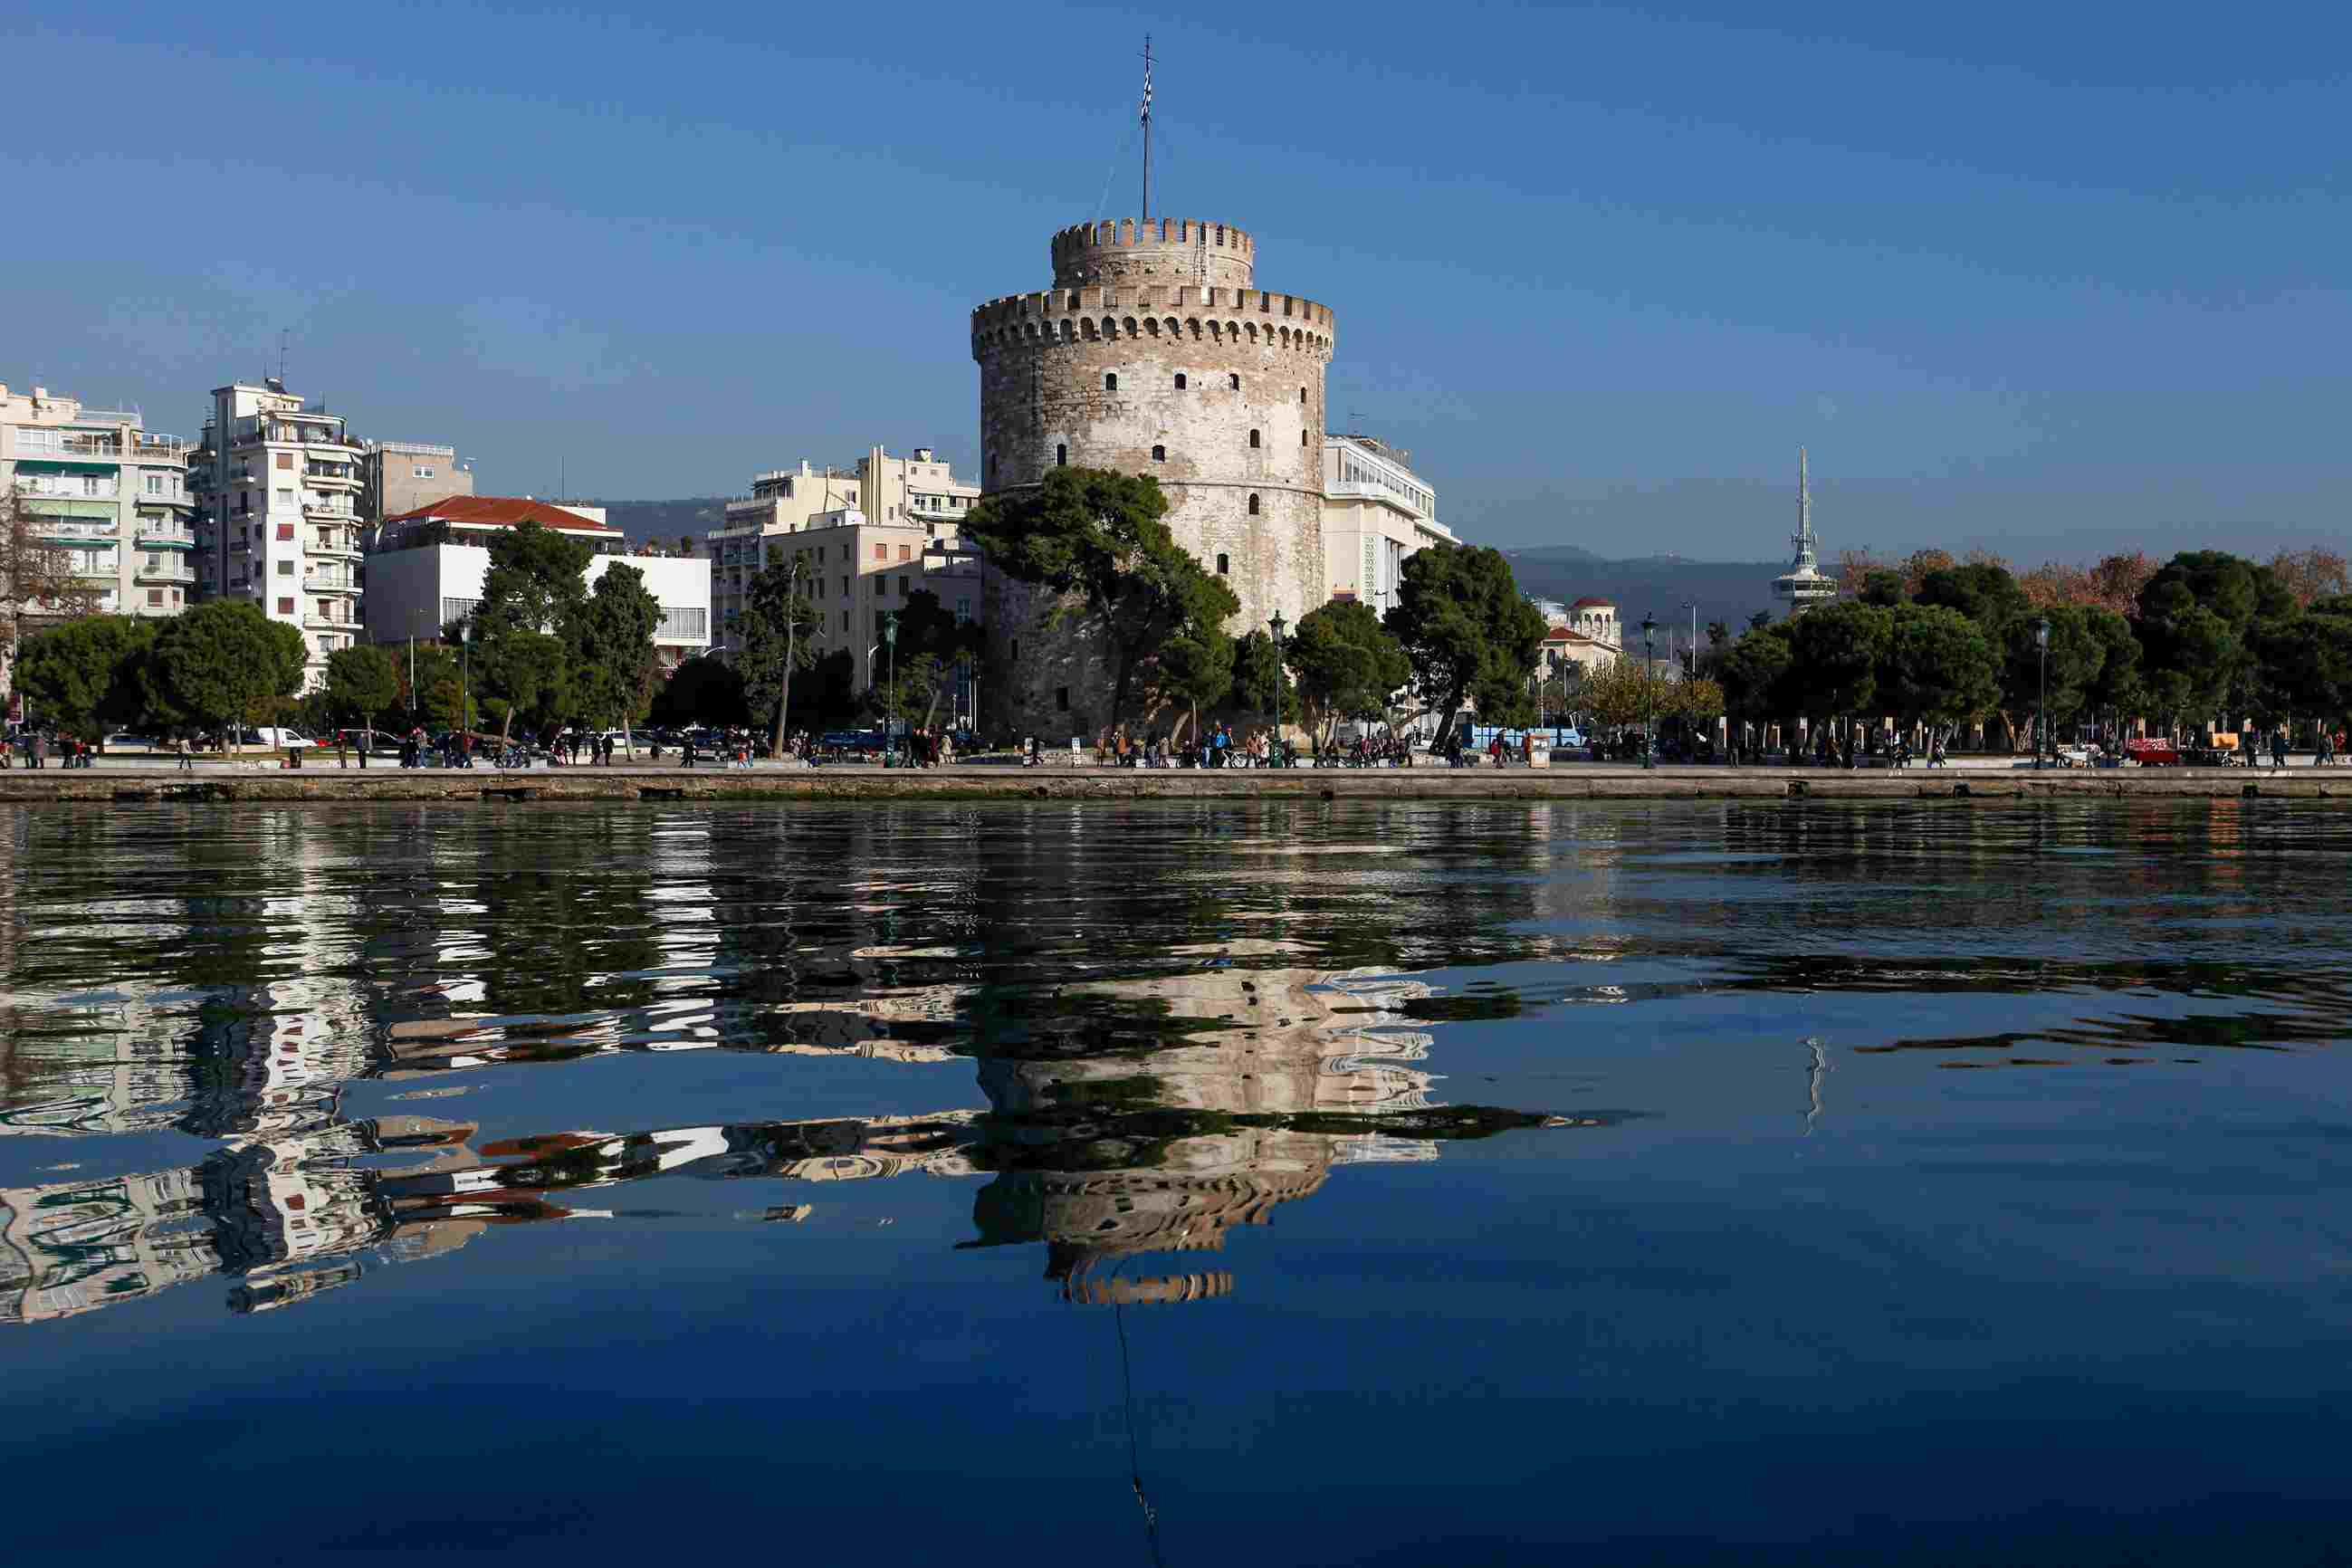 The White Tower, symbol of Thessaloniki